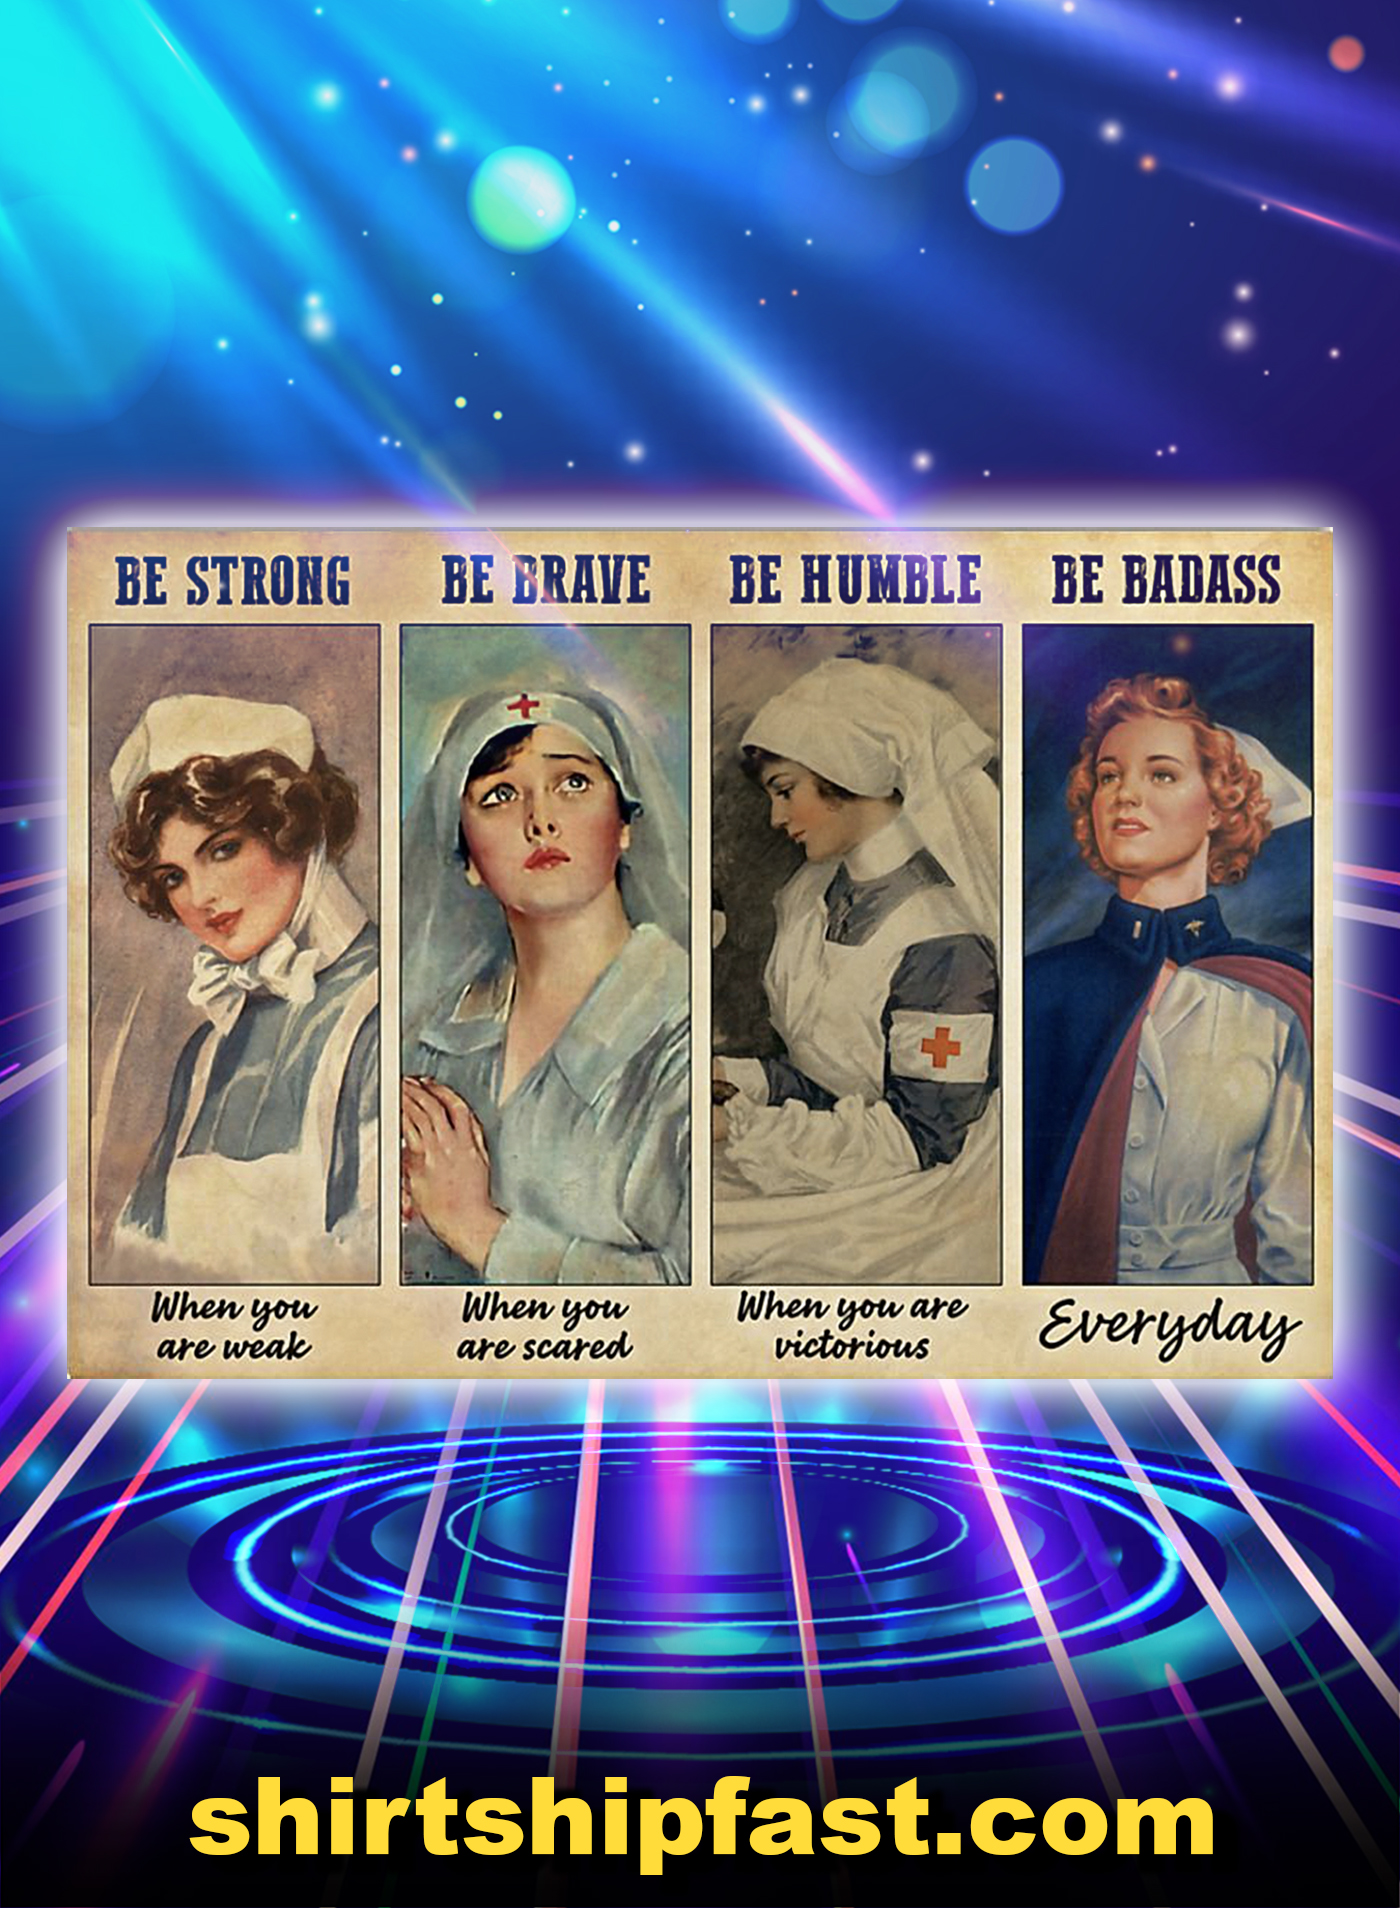 Nurse be strong be brave be humble be badass poster - A1